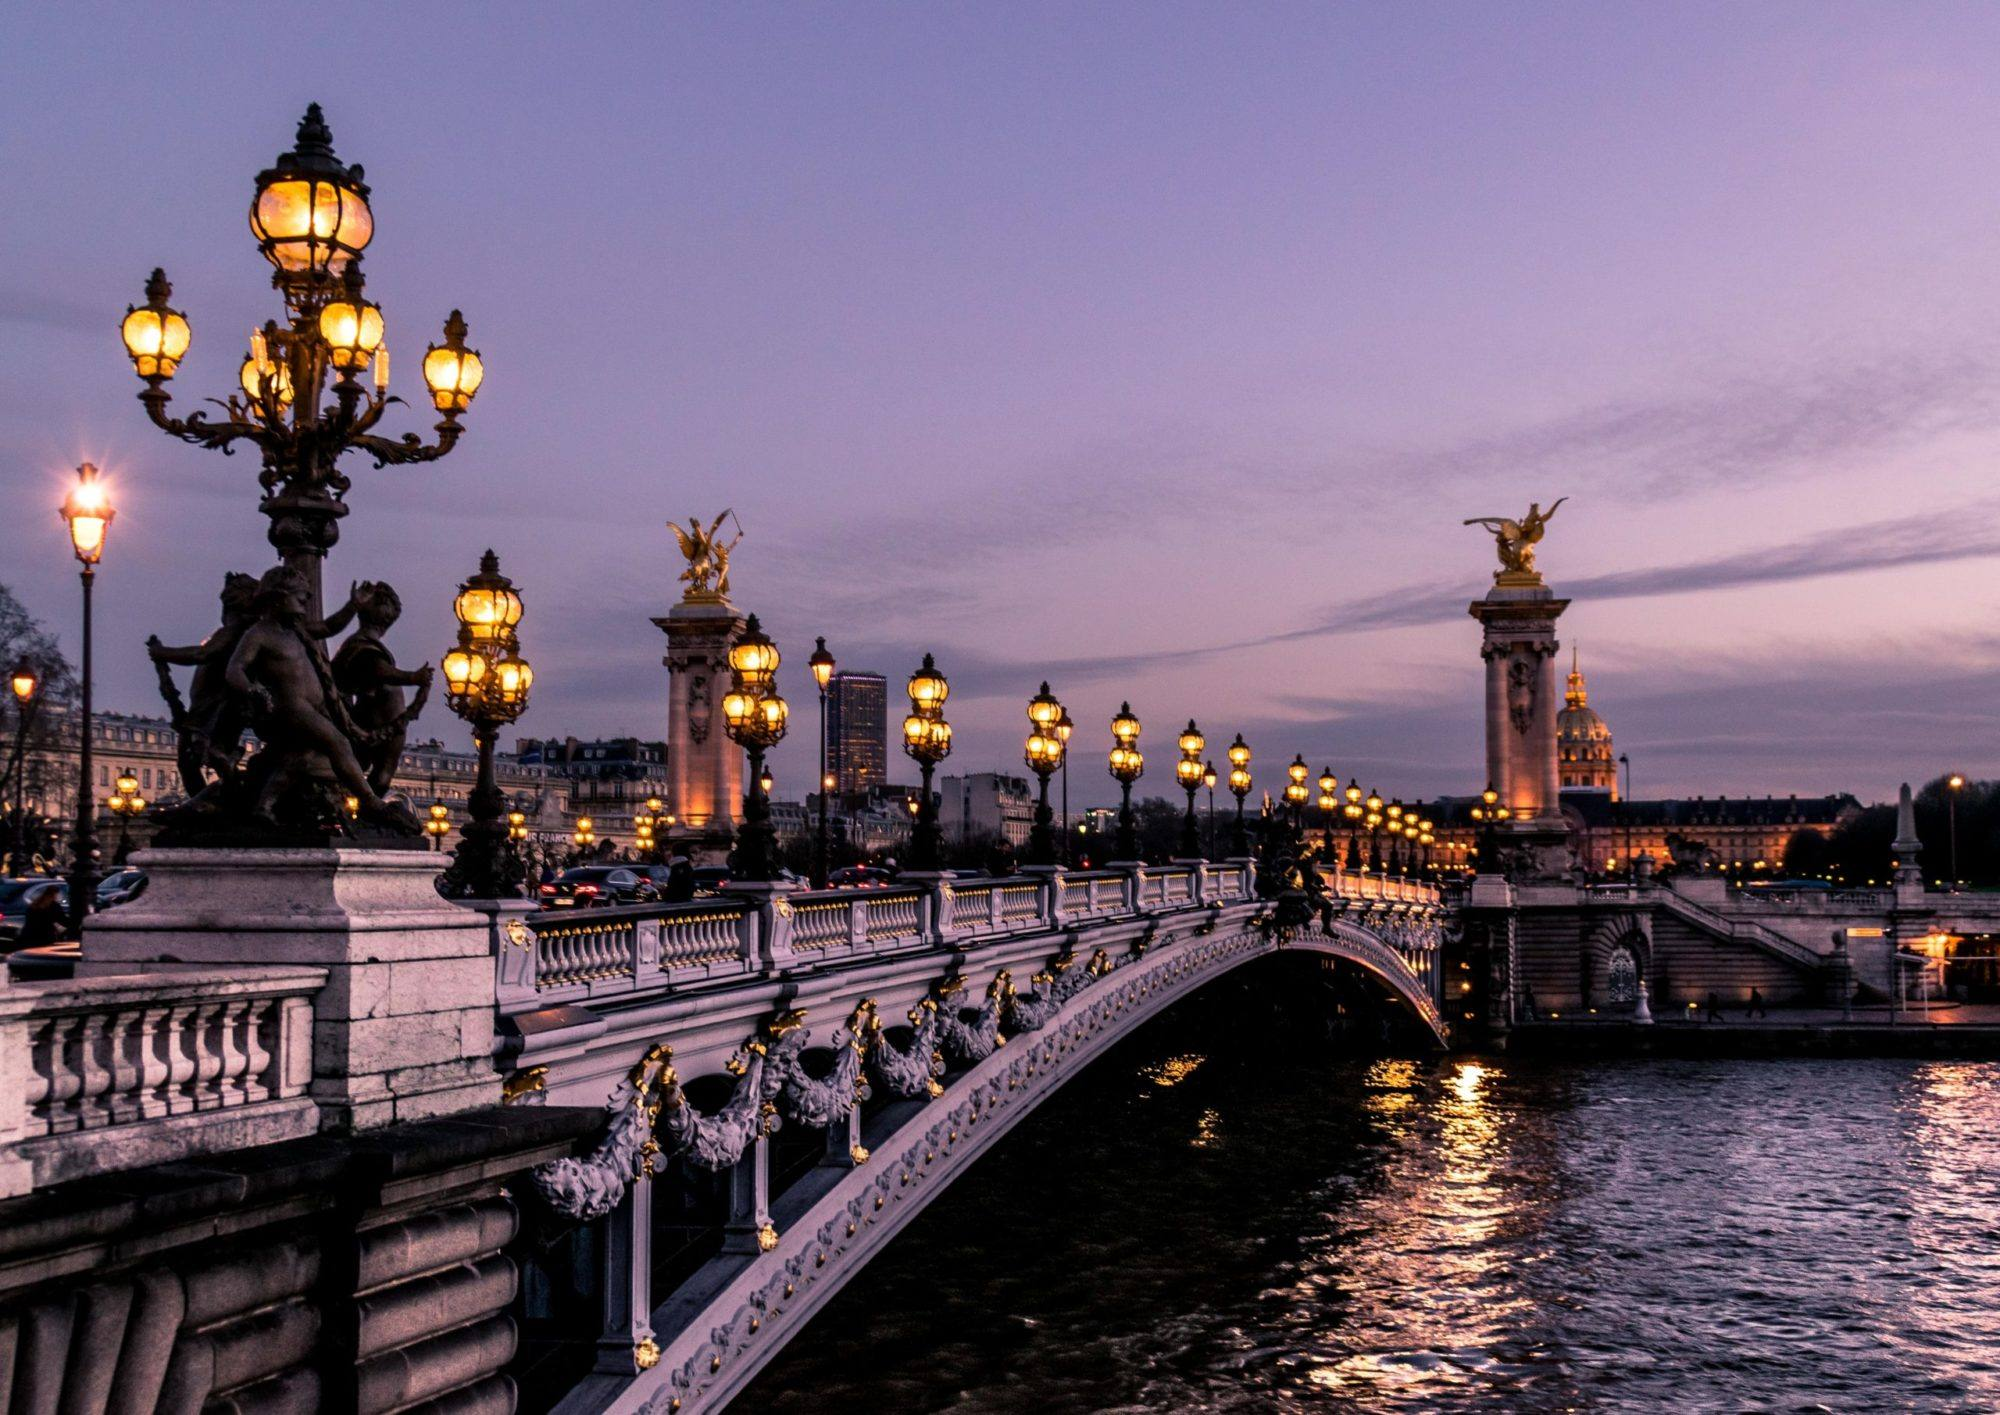 The Best Places to Visit in Paris in 2 Days